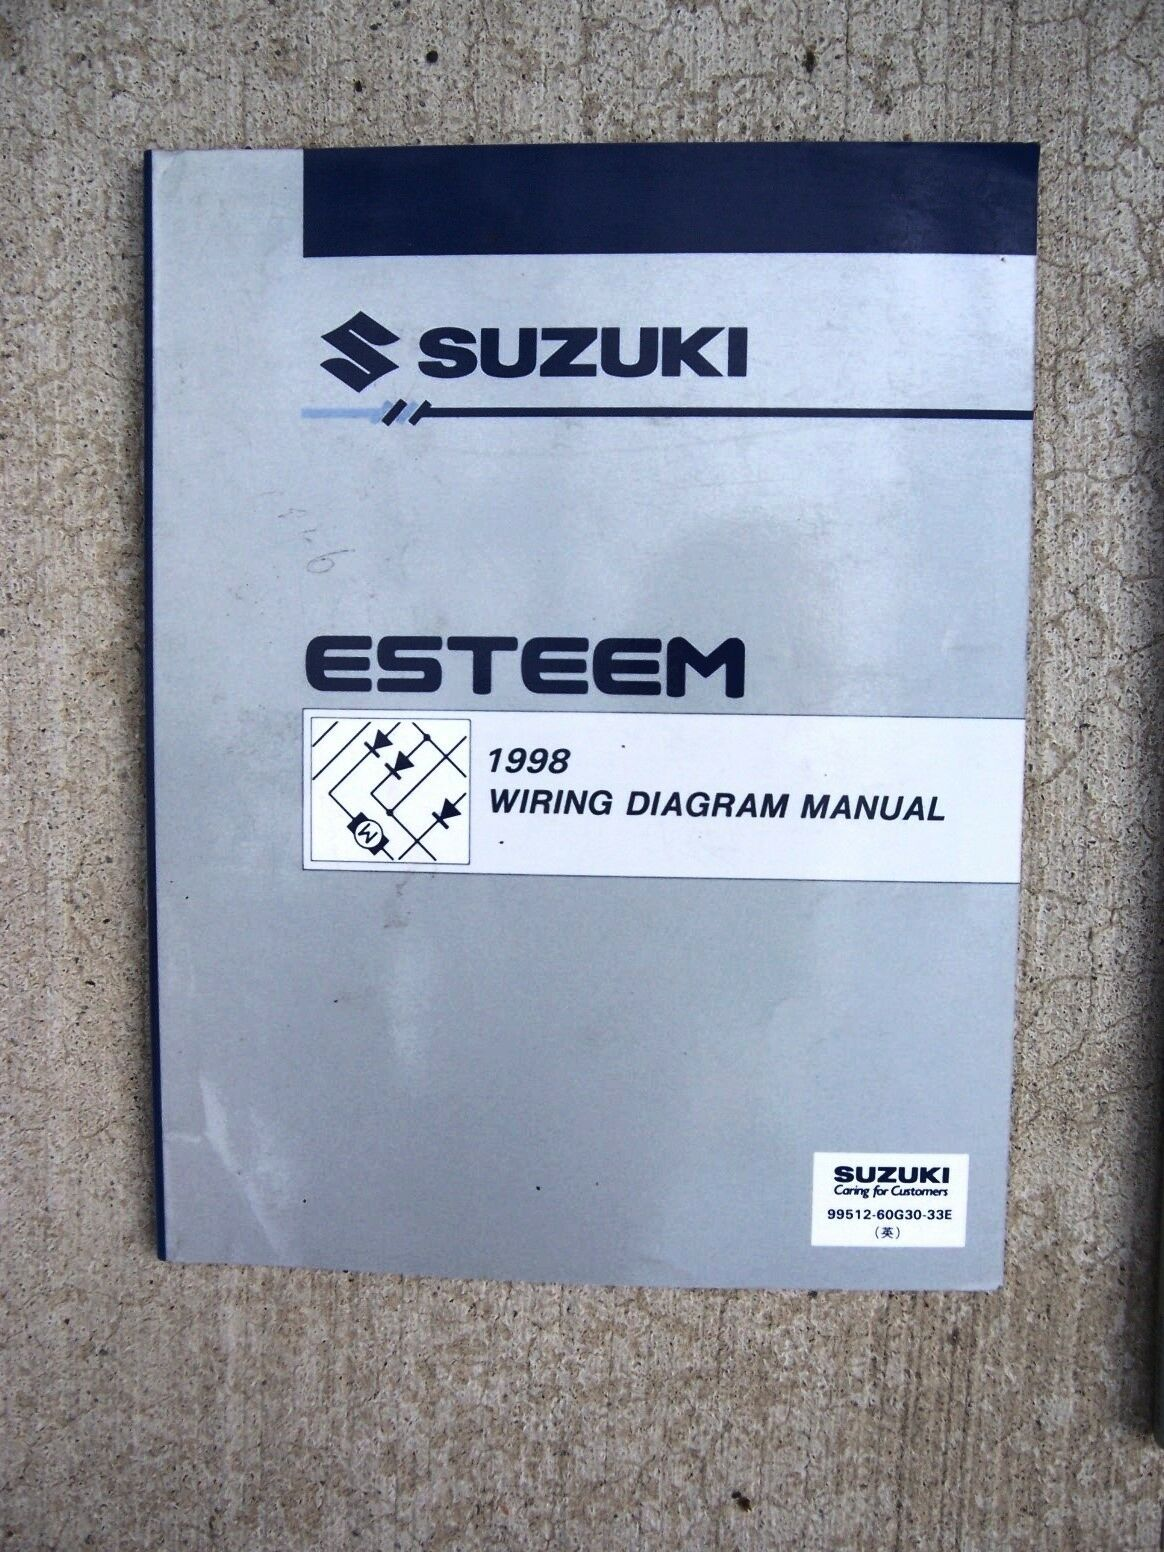 1998 Suzuki Esteem Wiring Diagrams Schematics 160 Atv Diagram House Symbols Auto Manual Connectors Ground Rh Picclick Com Repair